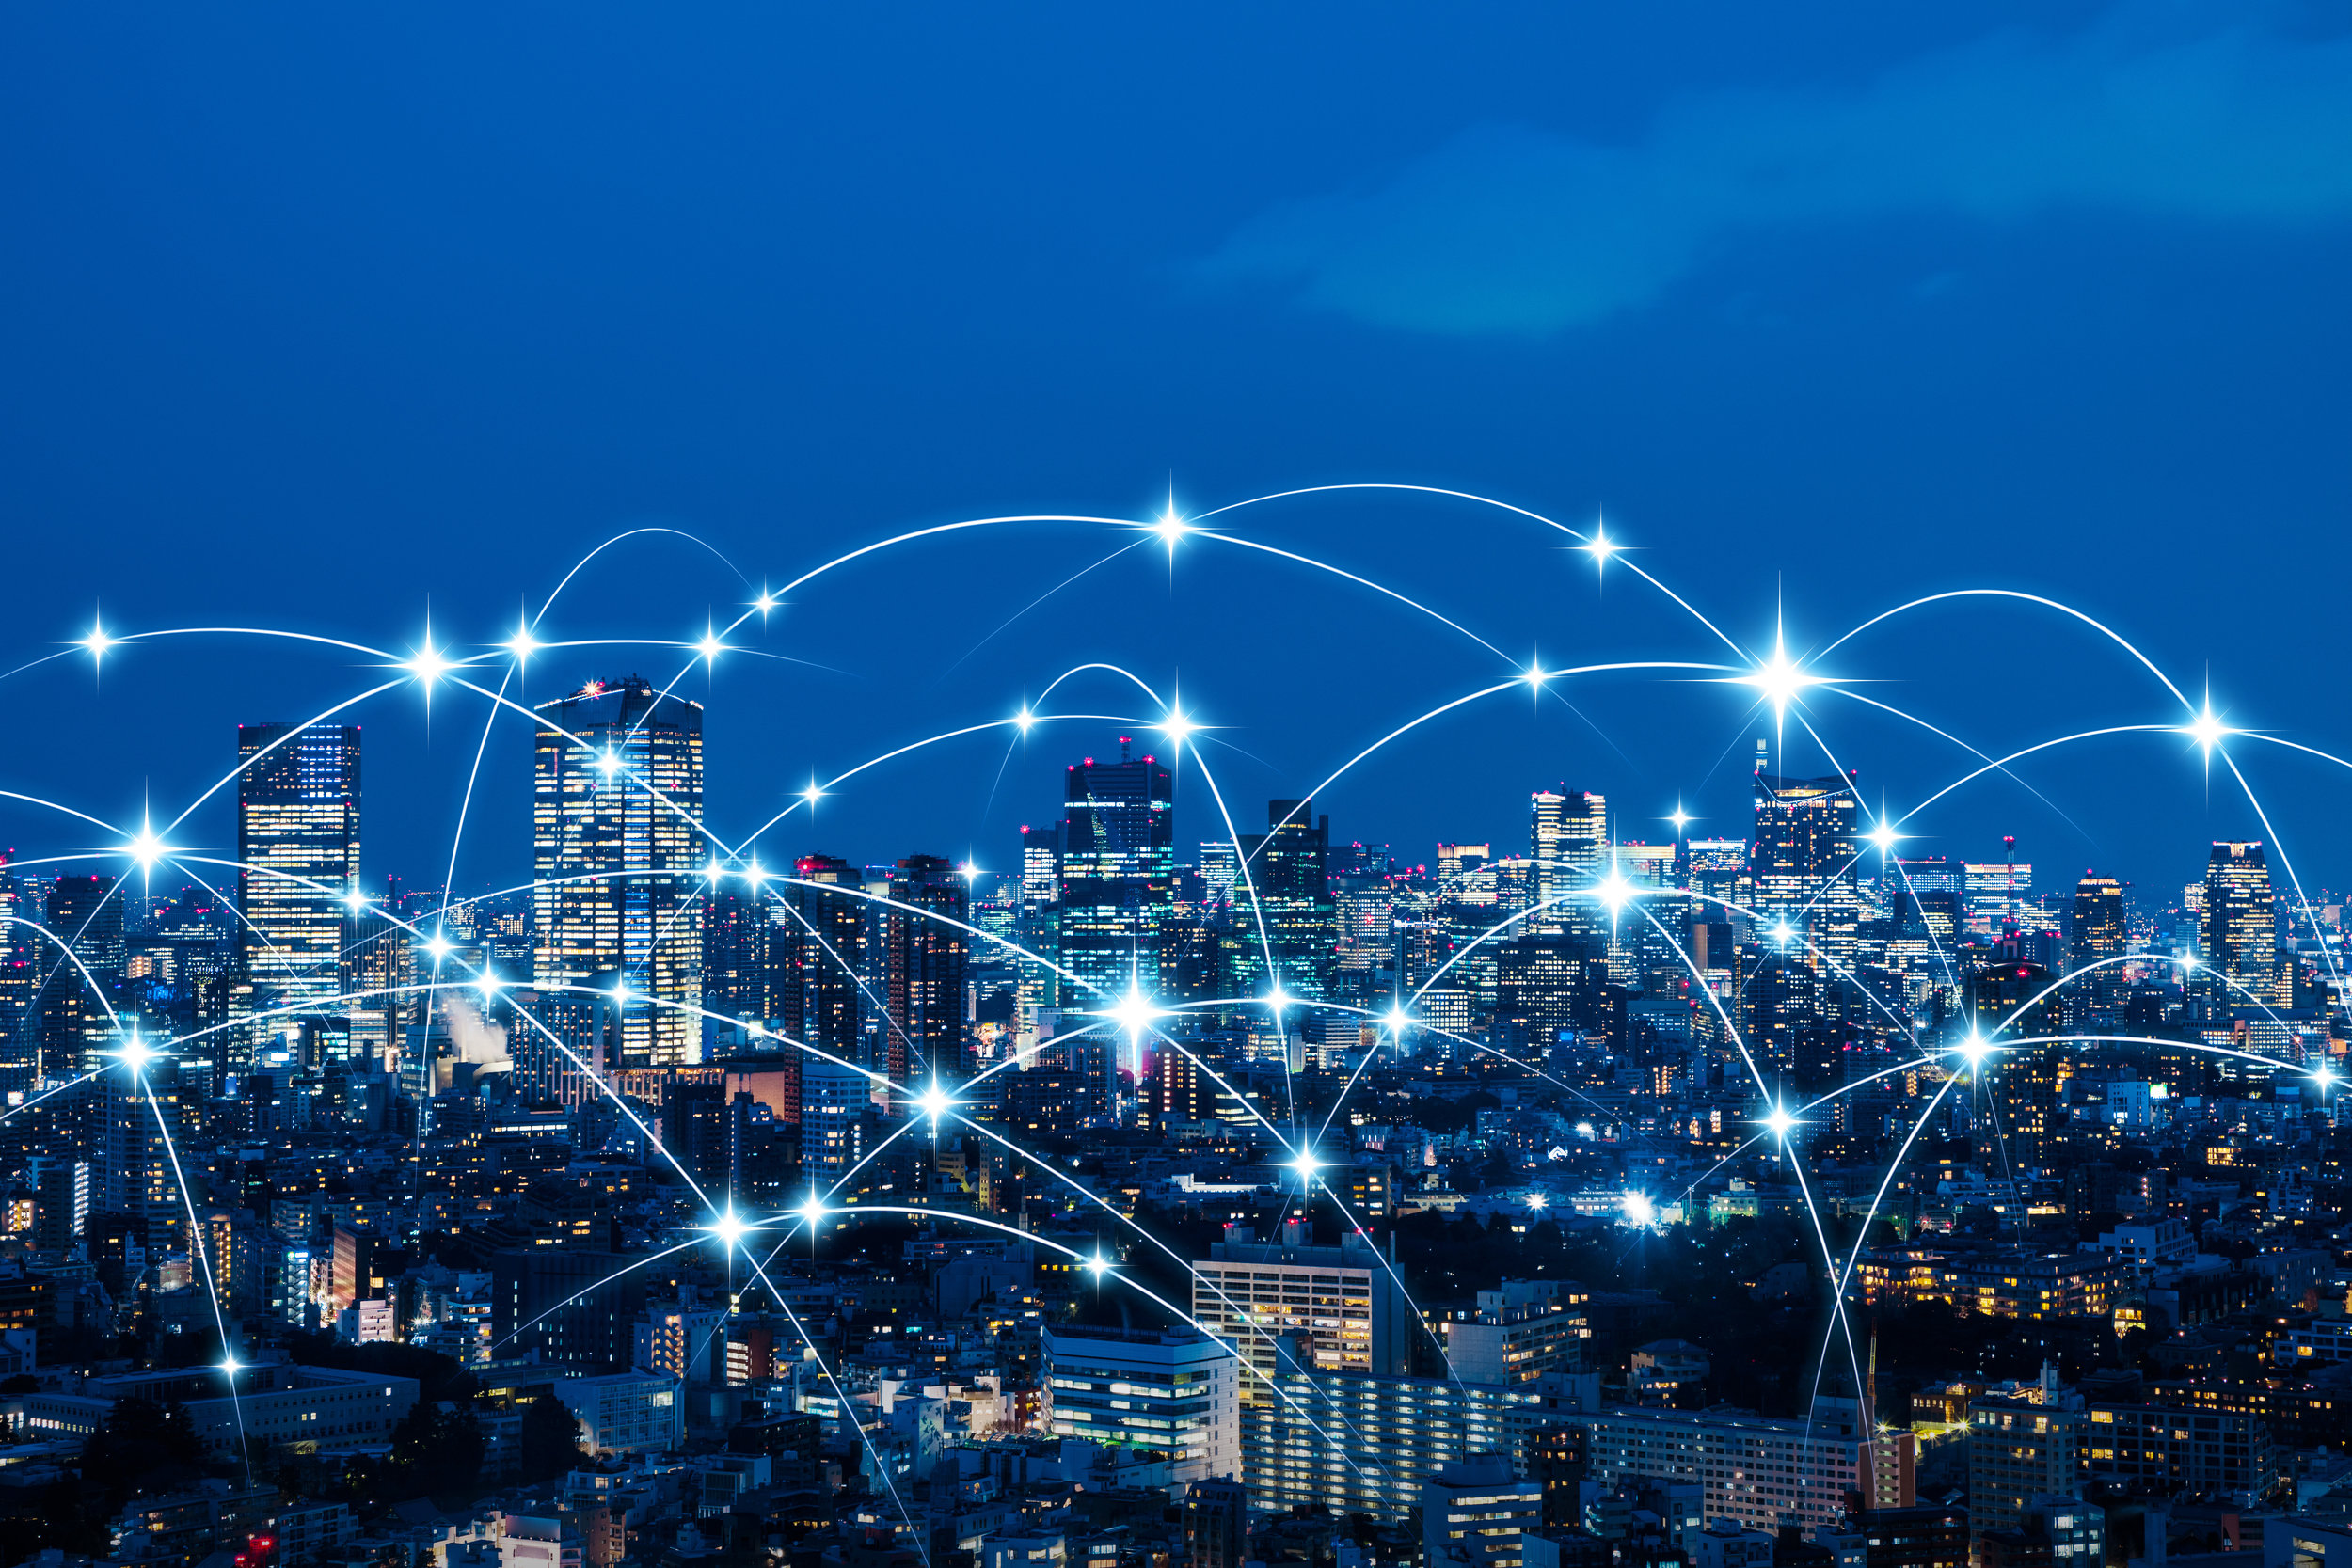 SMART BUILDINGS FOR SMART PEOPLE - Creating great user experiences involving connectedness, IoT, and real estate in a sustainable way.